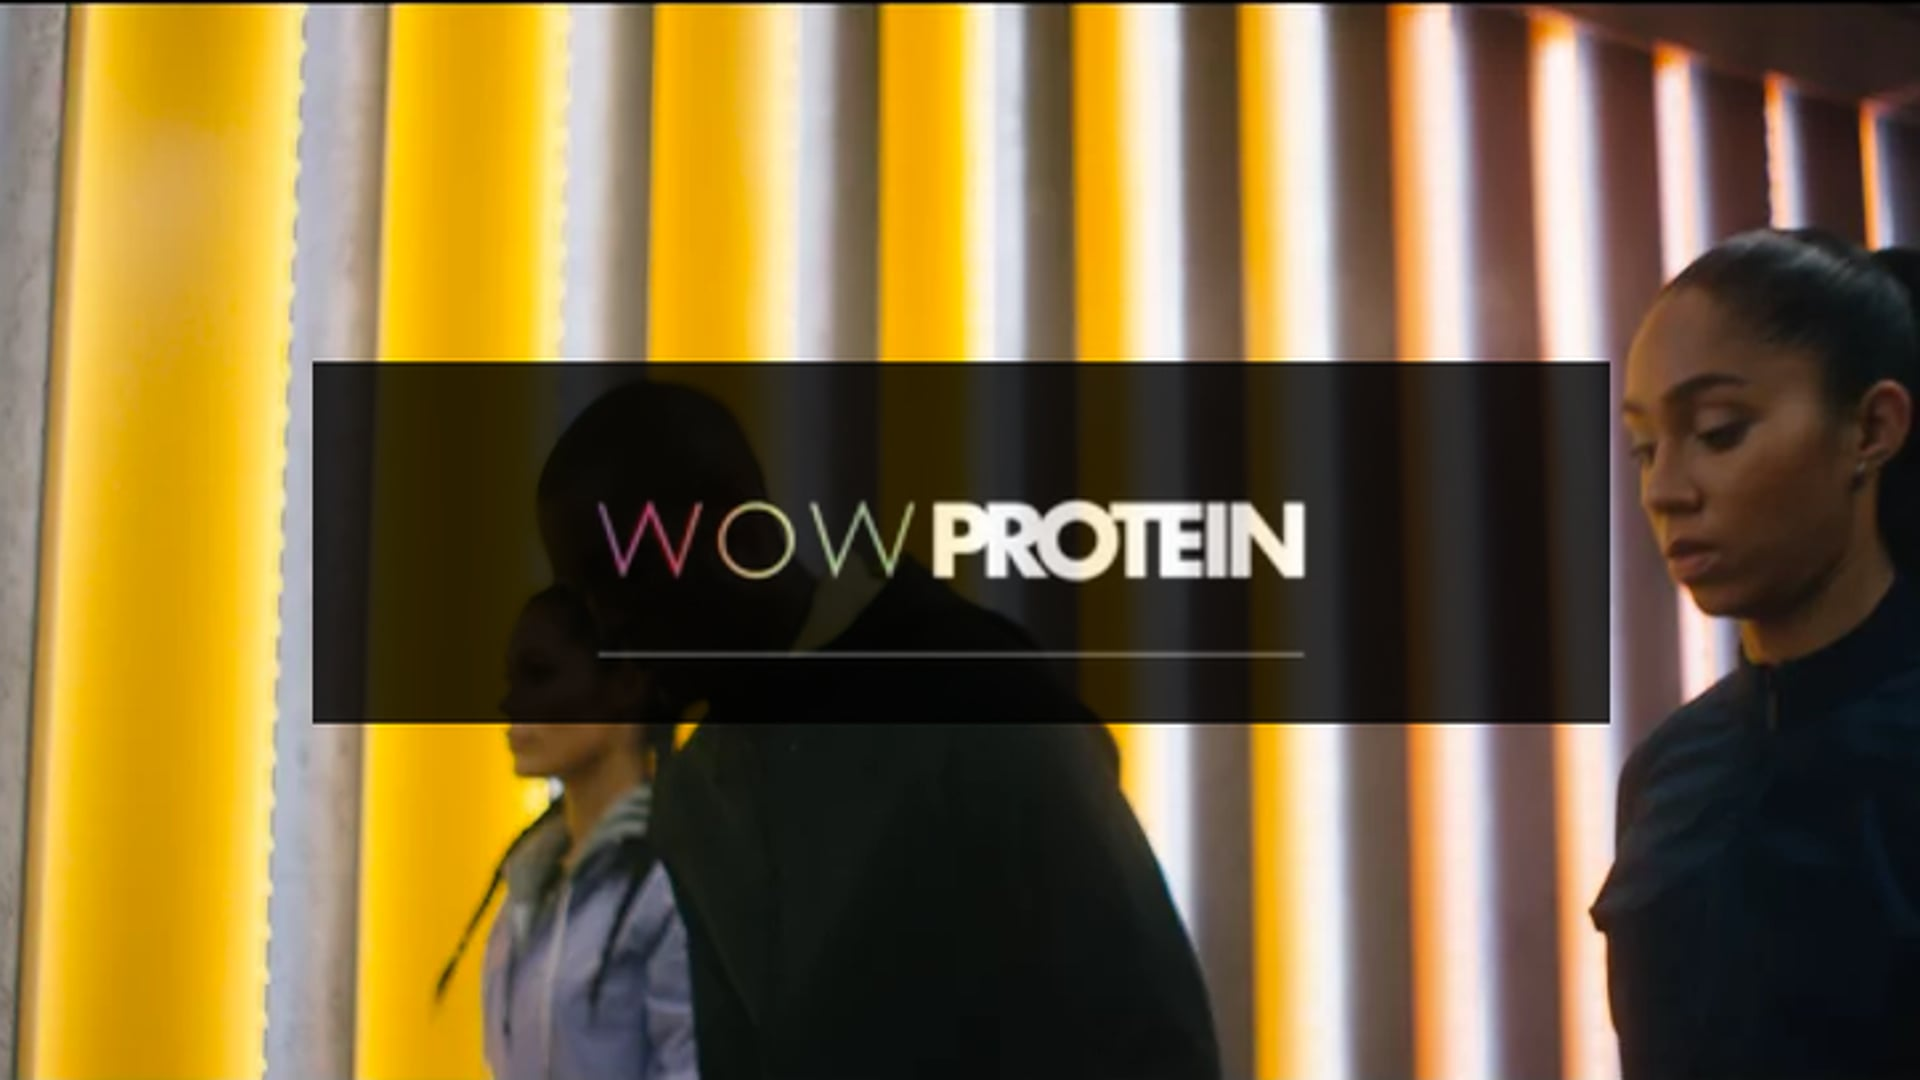 WOW protein